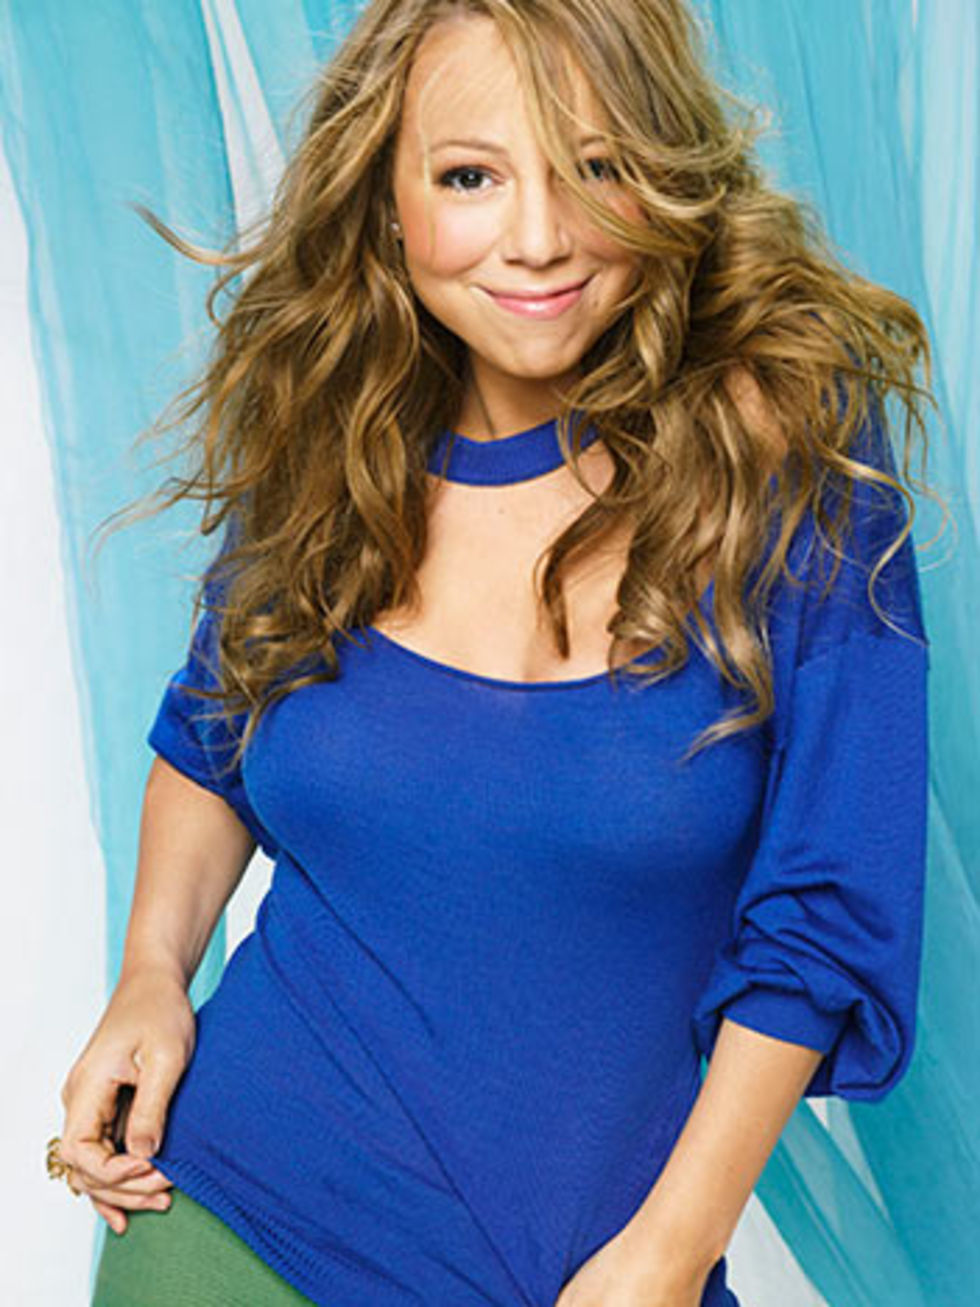 mariah-carey-parade-magazine-2008-photoshoot-mq-01